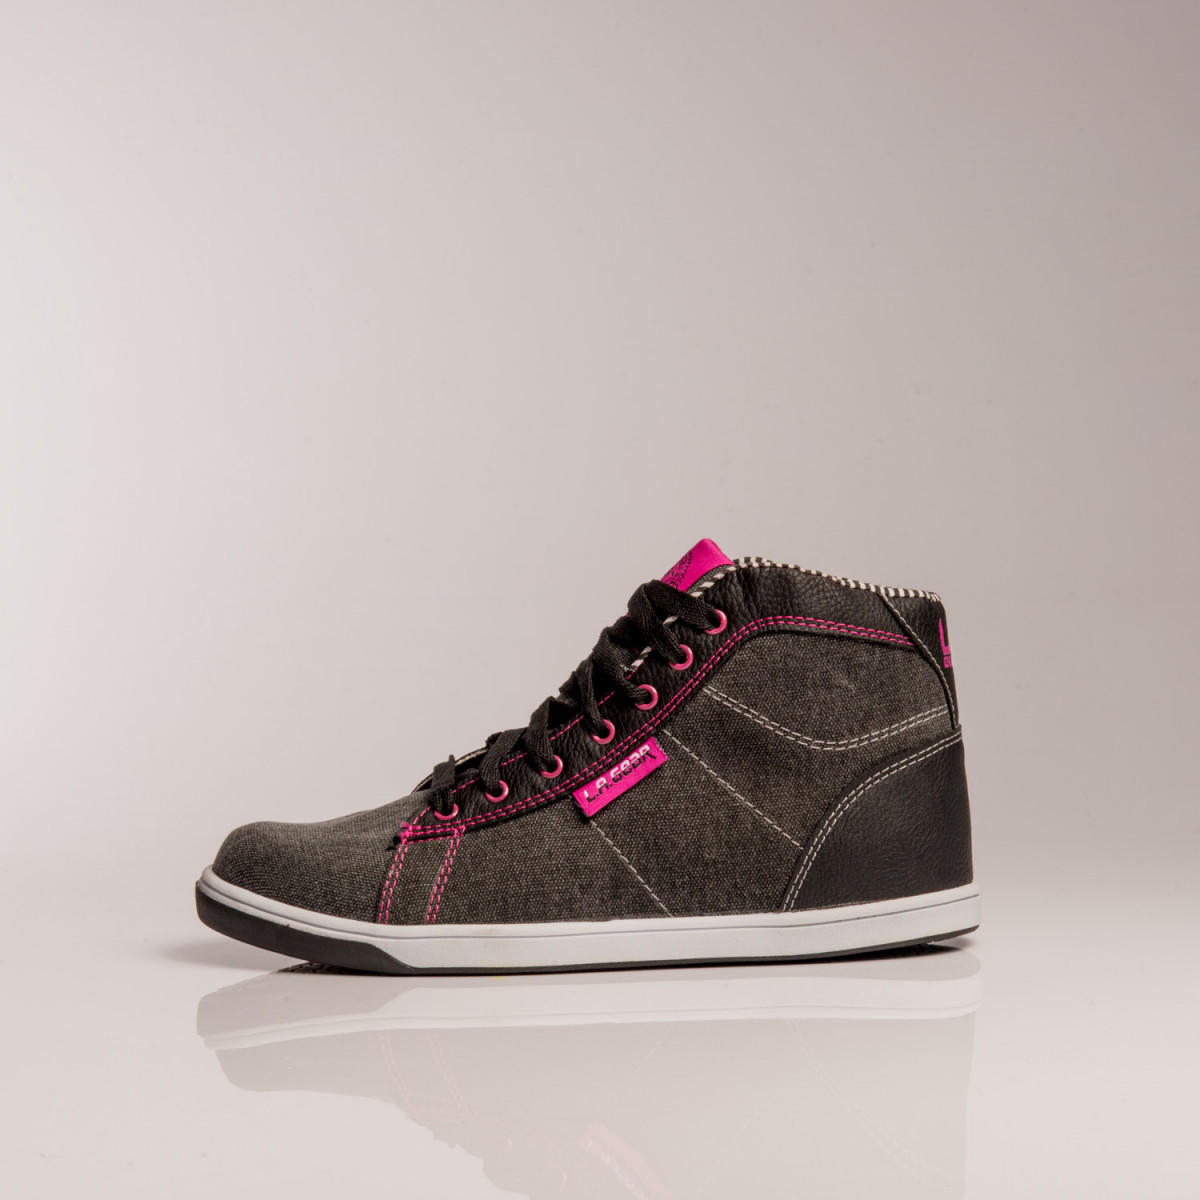 ZAPATILLAS LA GEAR HIPPER PU & LONA